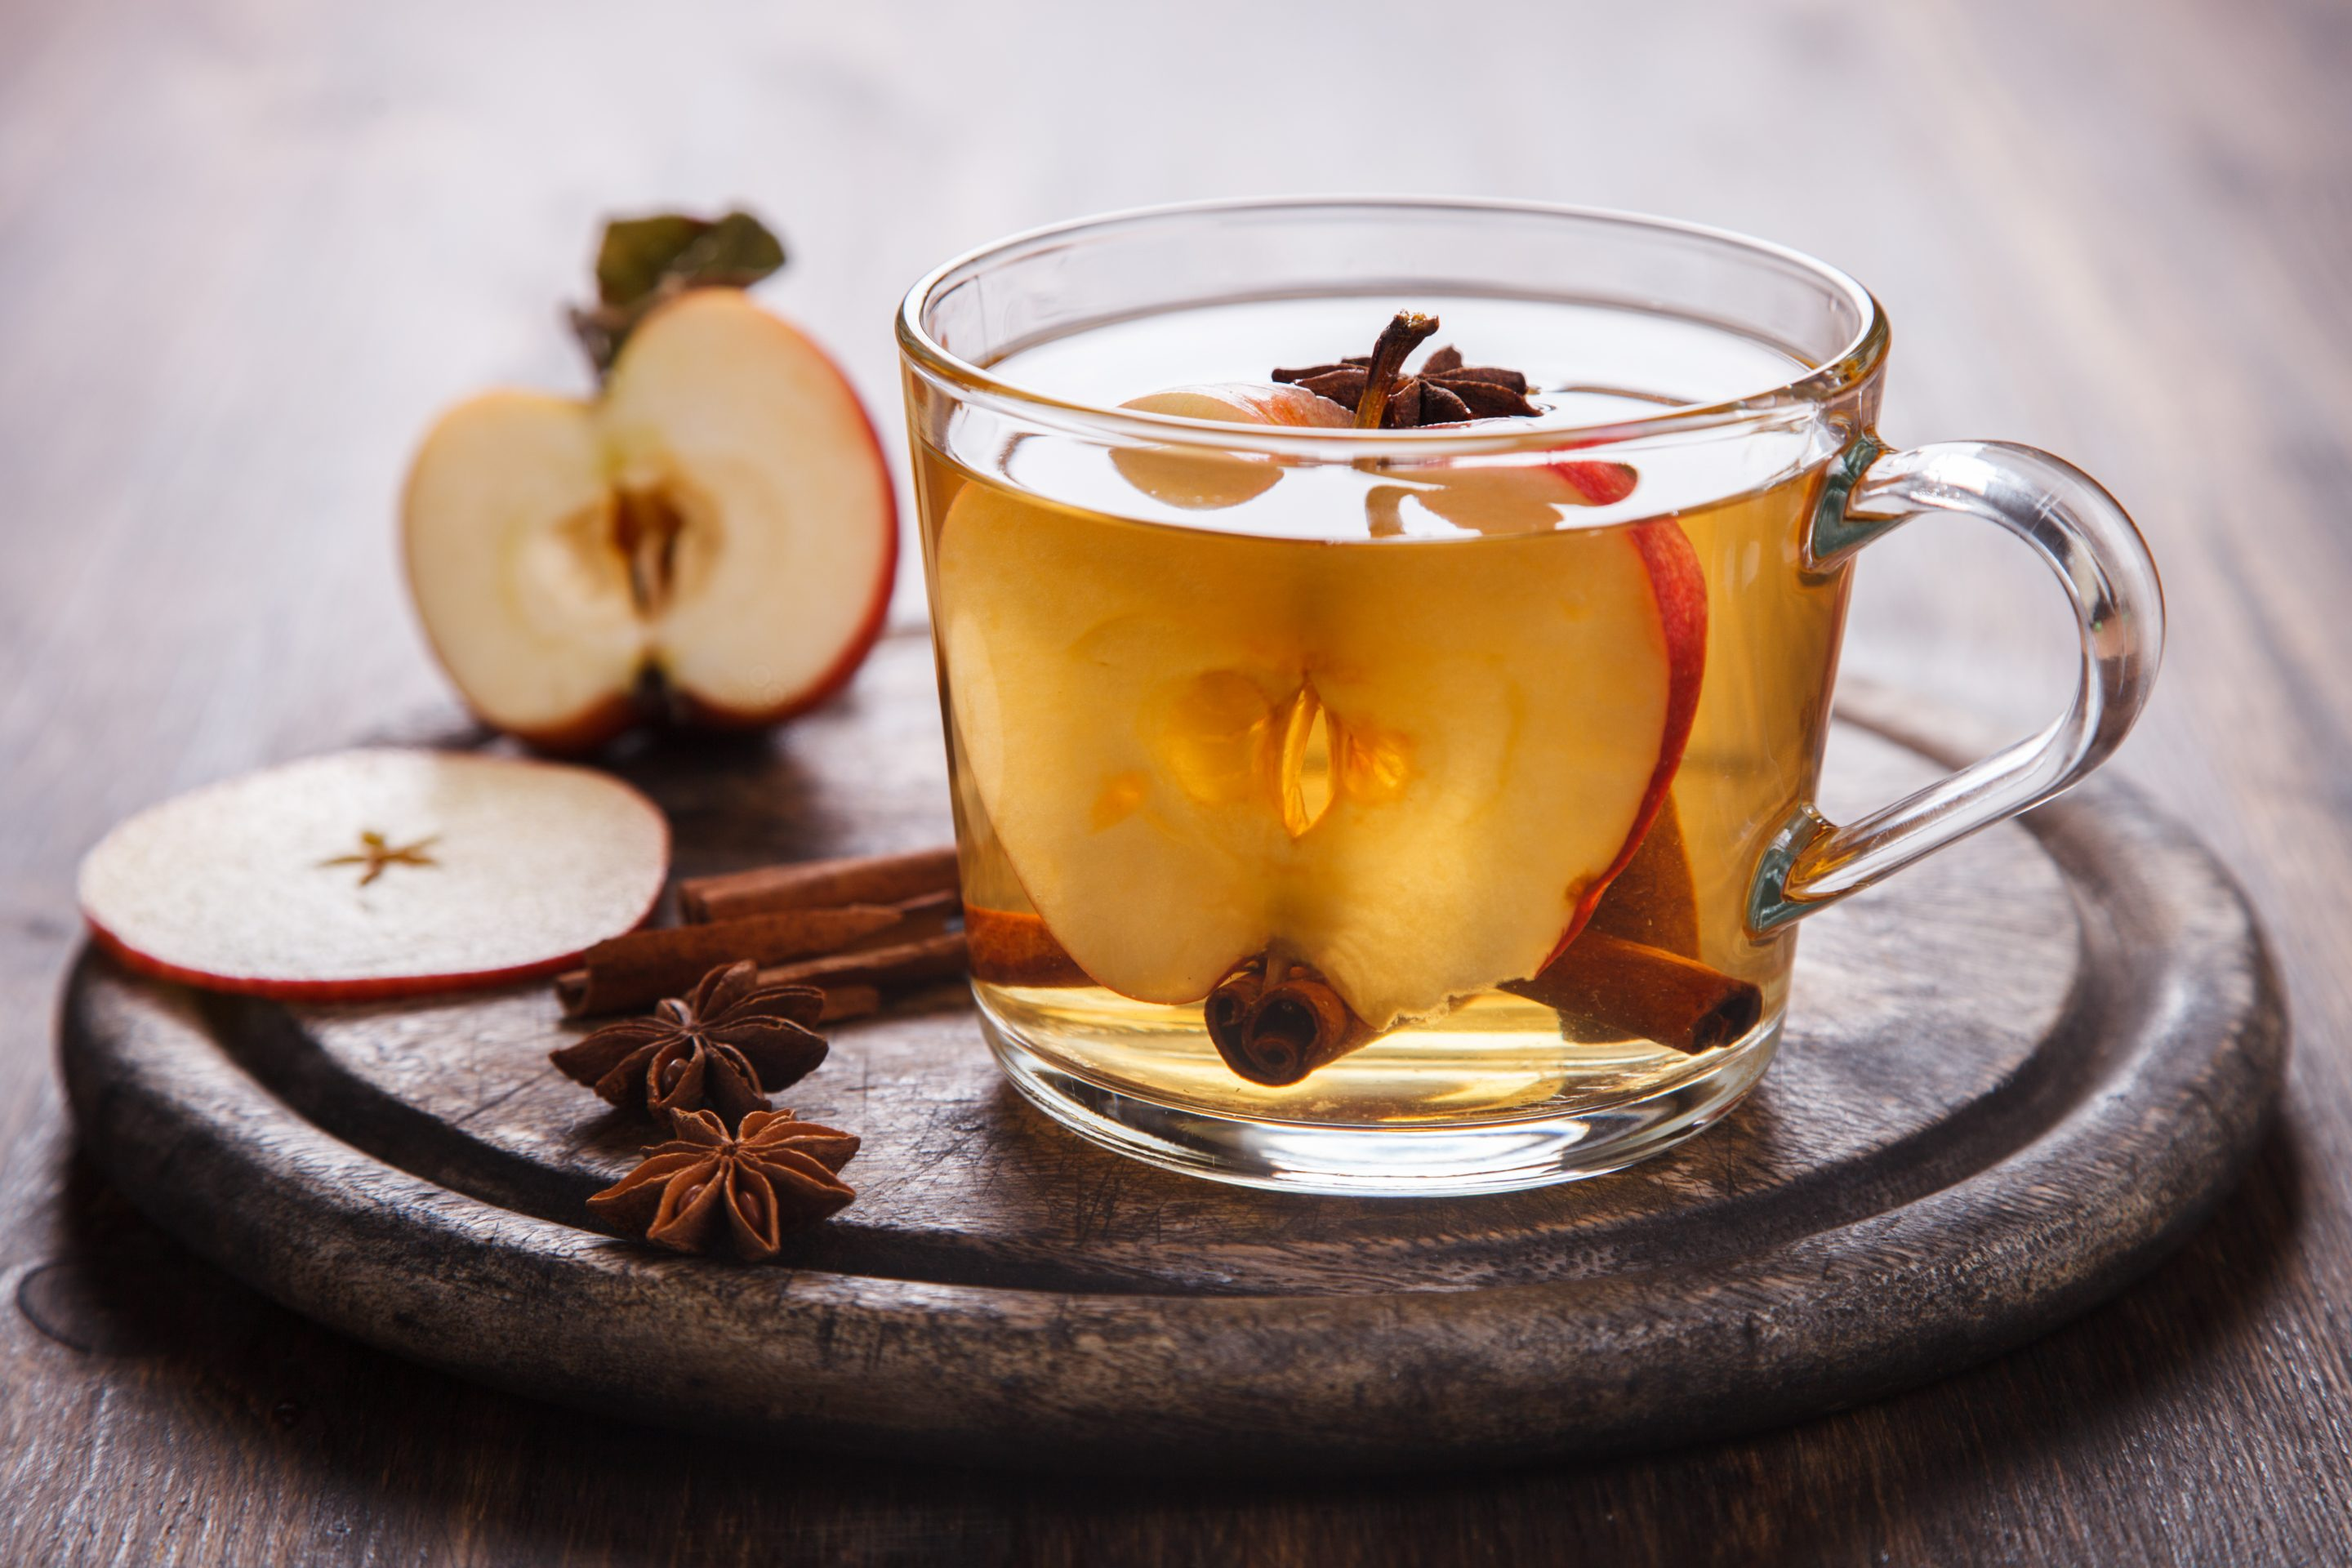 Single cup of apple tea with apple slices